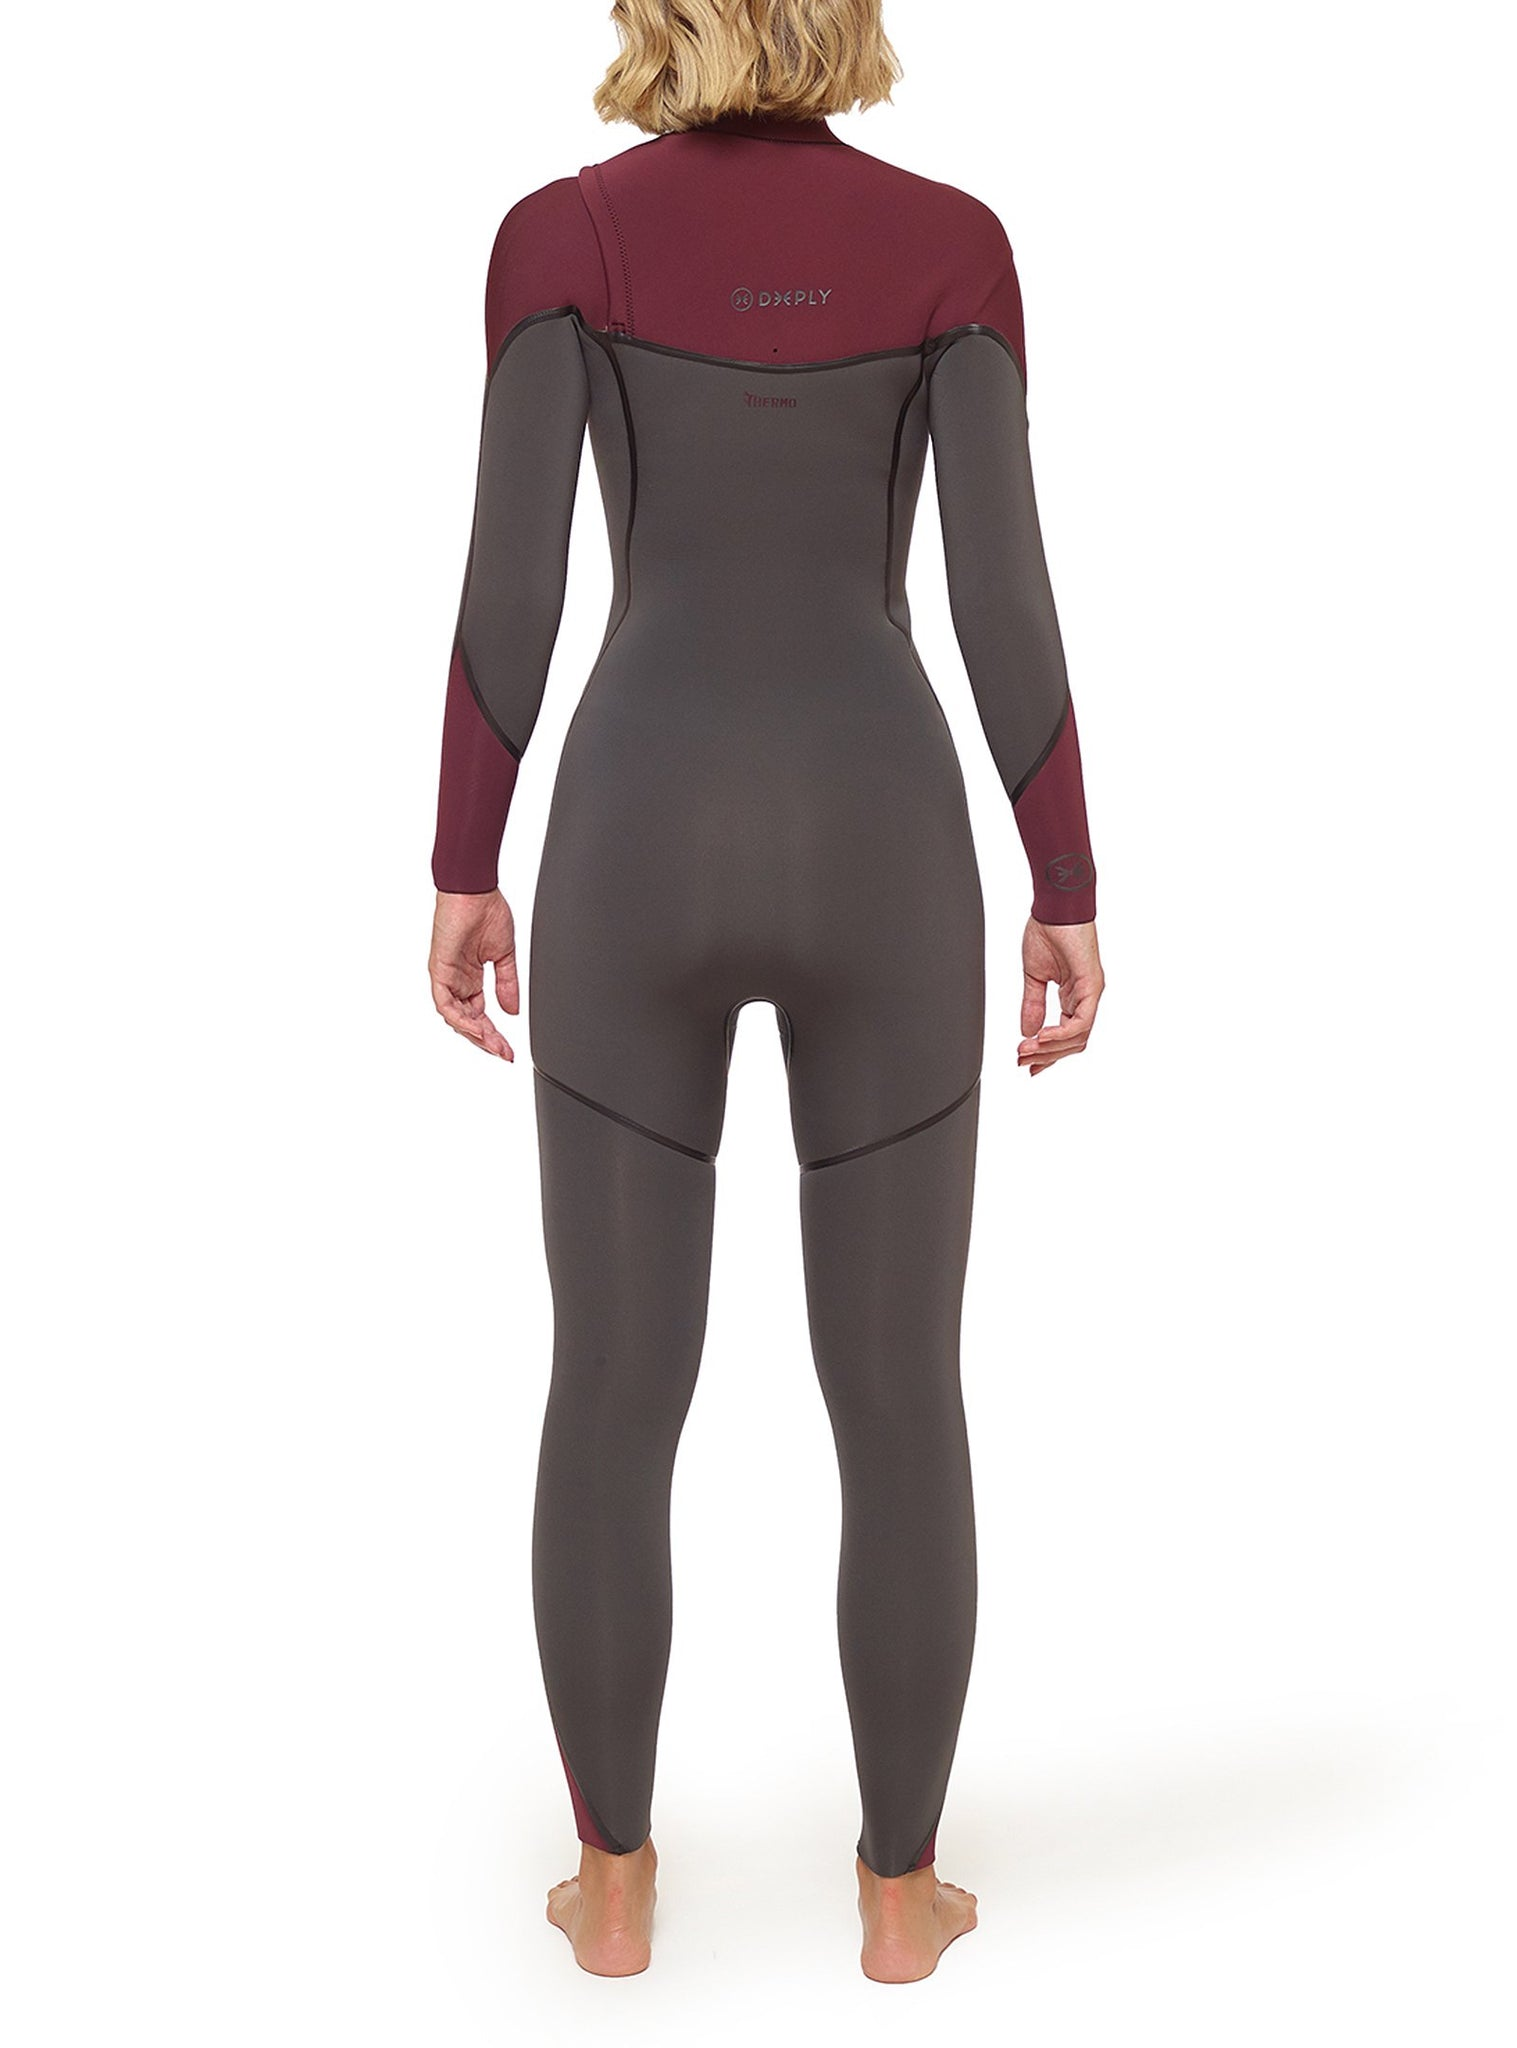 Wetsuit Woman Performance 4/3 Chest Zip Grey